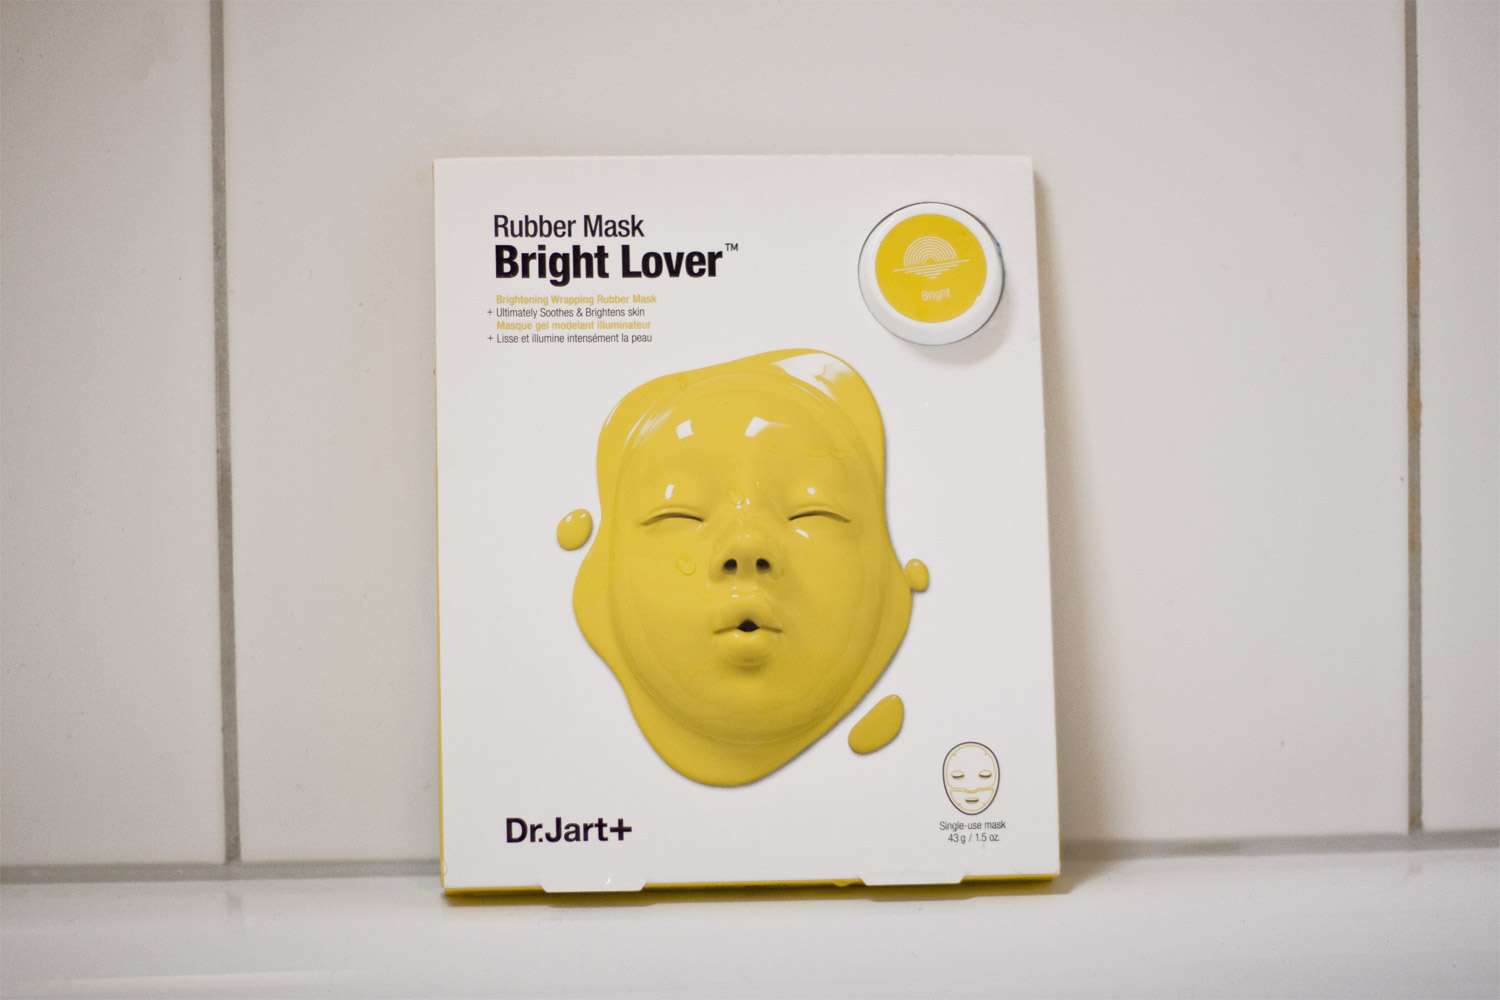 Dr.Jart+ Bright Lover Rubber Mask im Test.